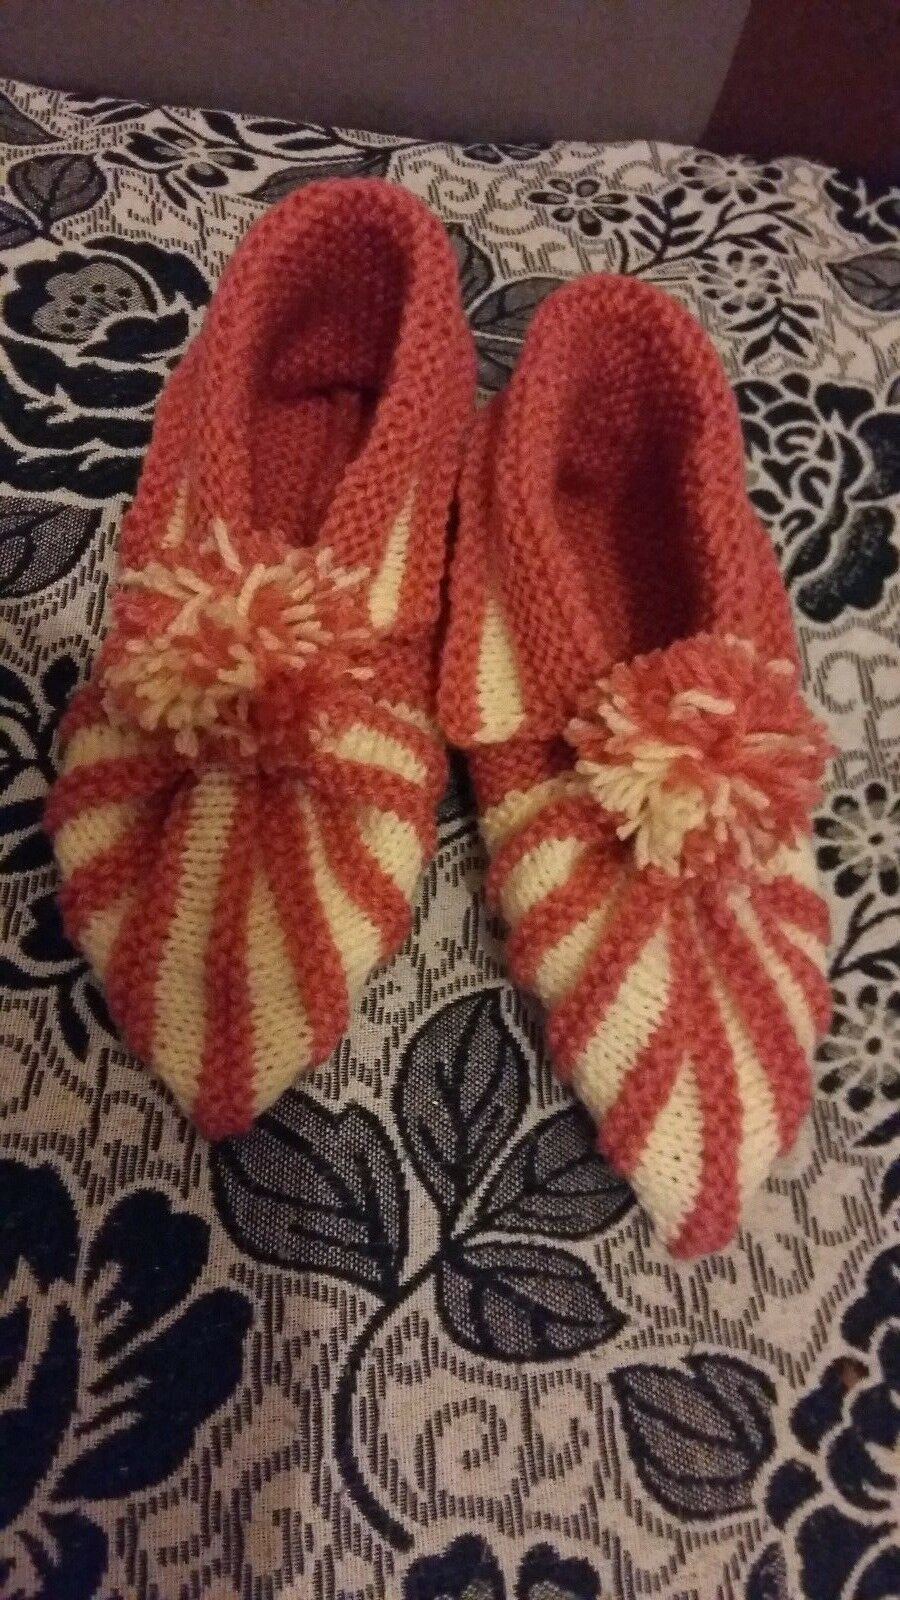 Ladies hand knitted booties /slippers, size 8.